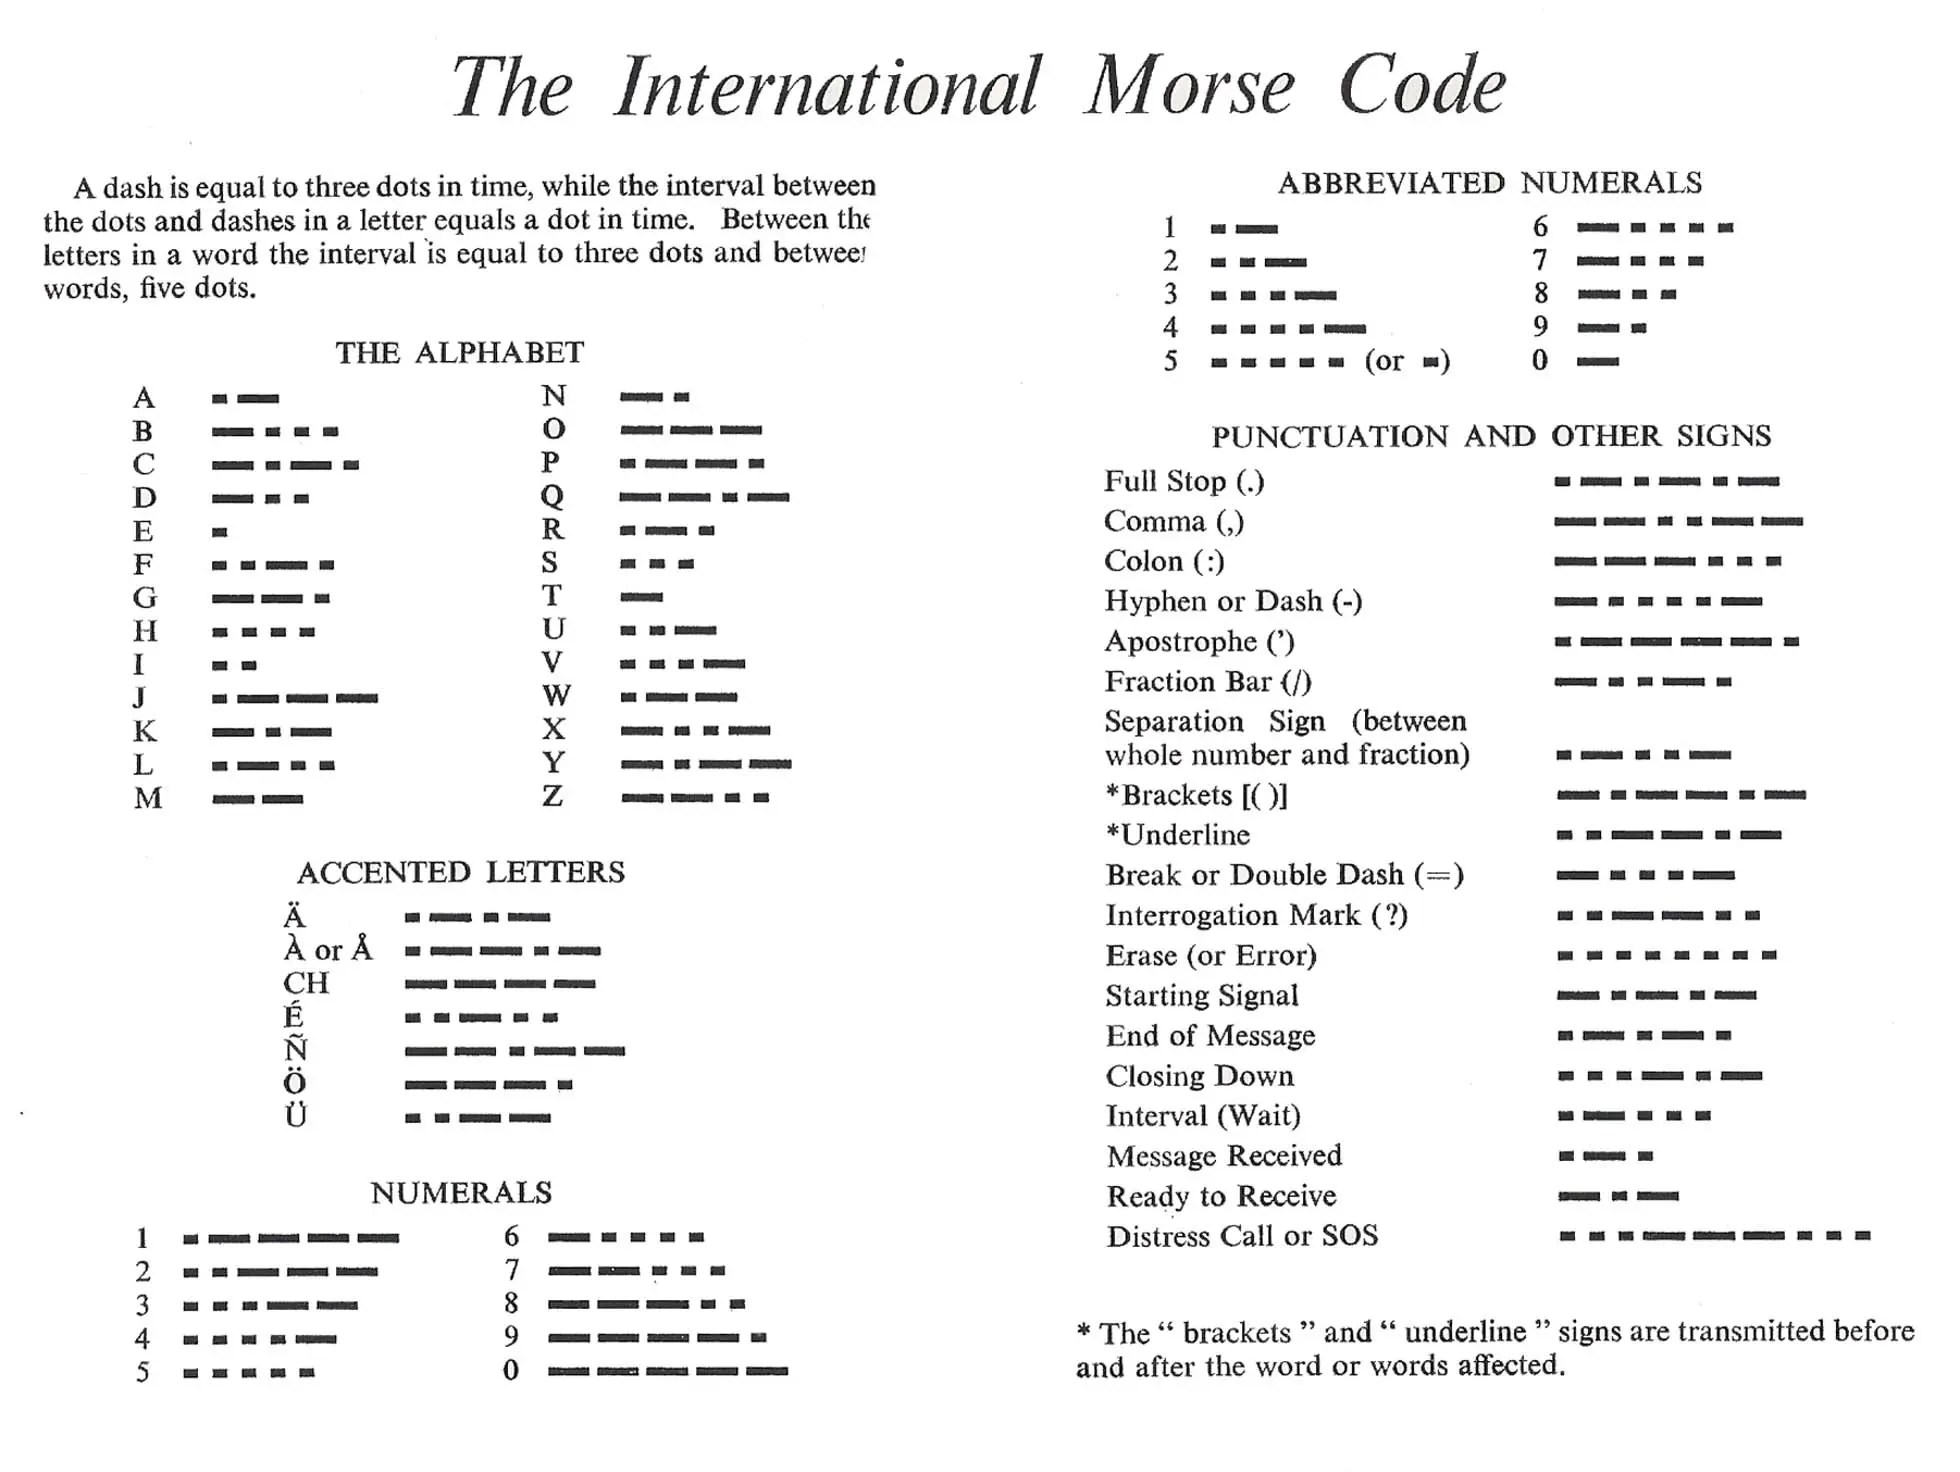 image relating to Morse Code Chart Printable called World-wide Morse Code chart Wilderness Arena